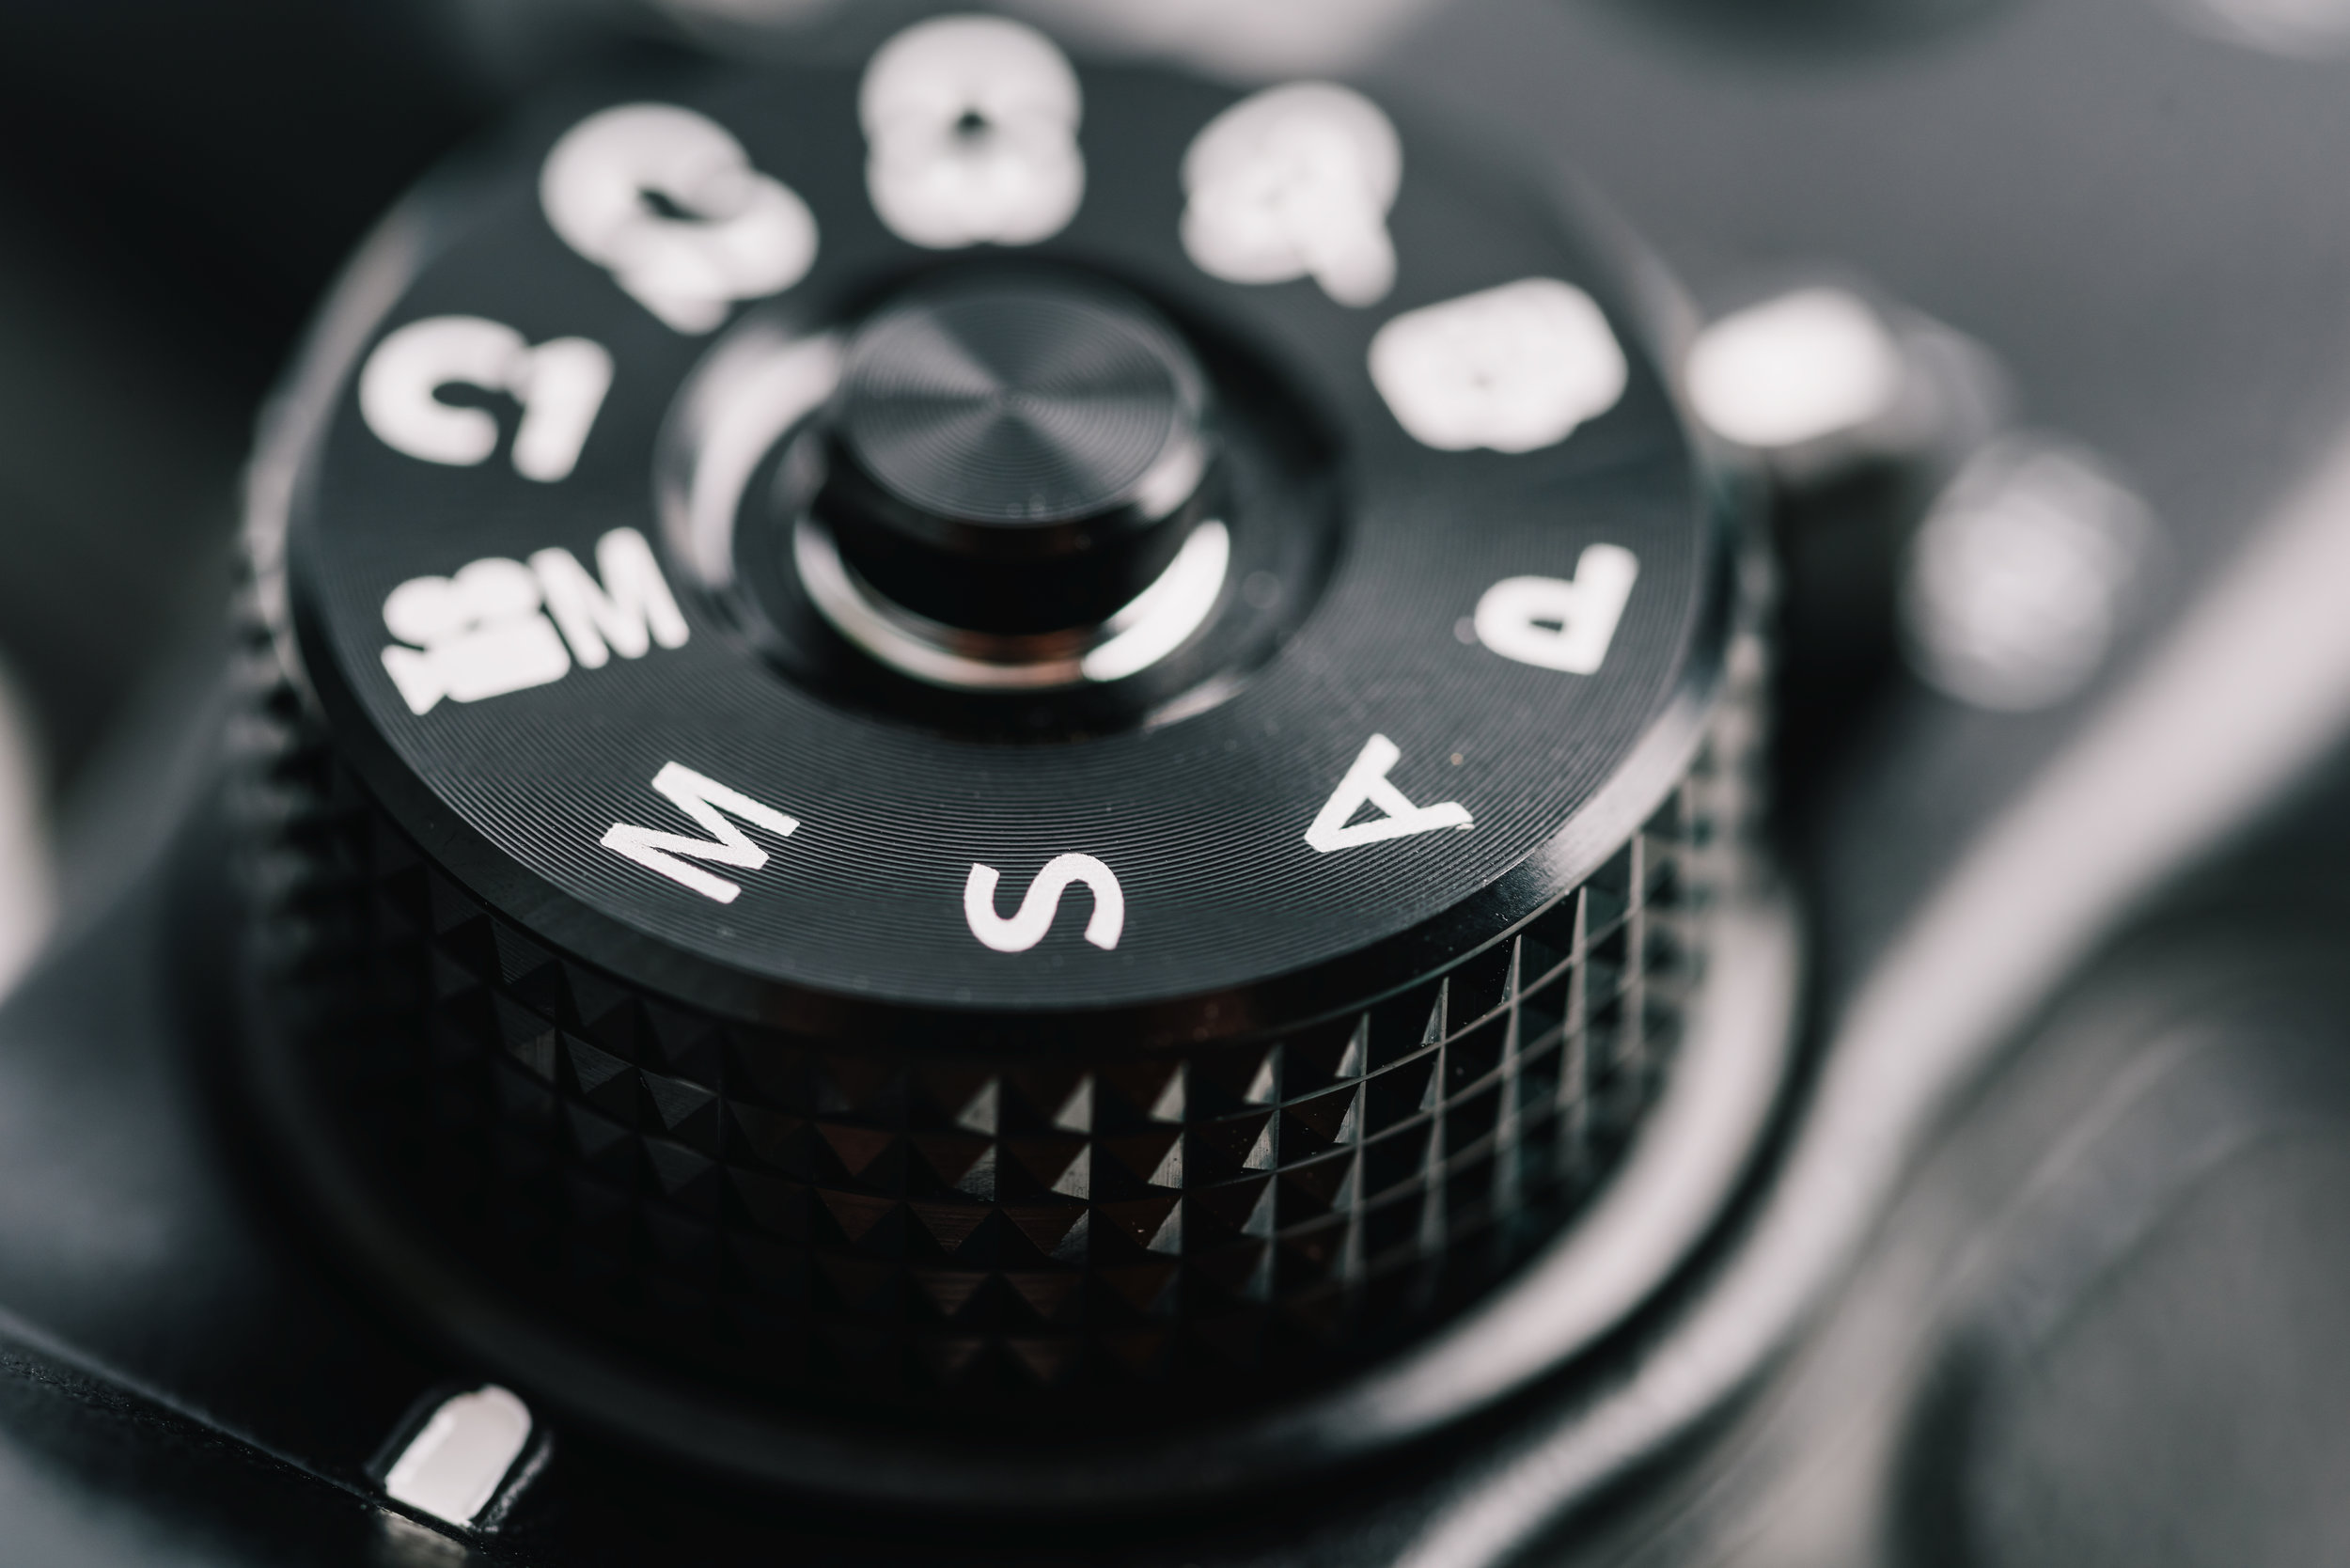 Copy of Digital Camera Control Dial Showing Aperture, Shutter Speed, Manual and Program Generic Modes